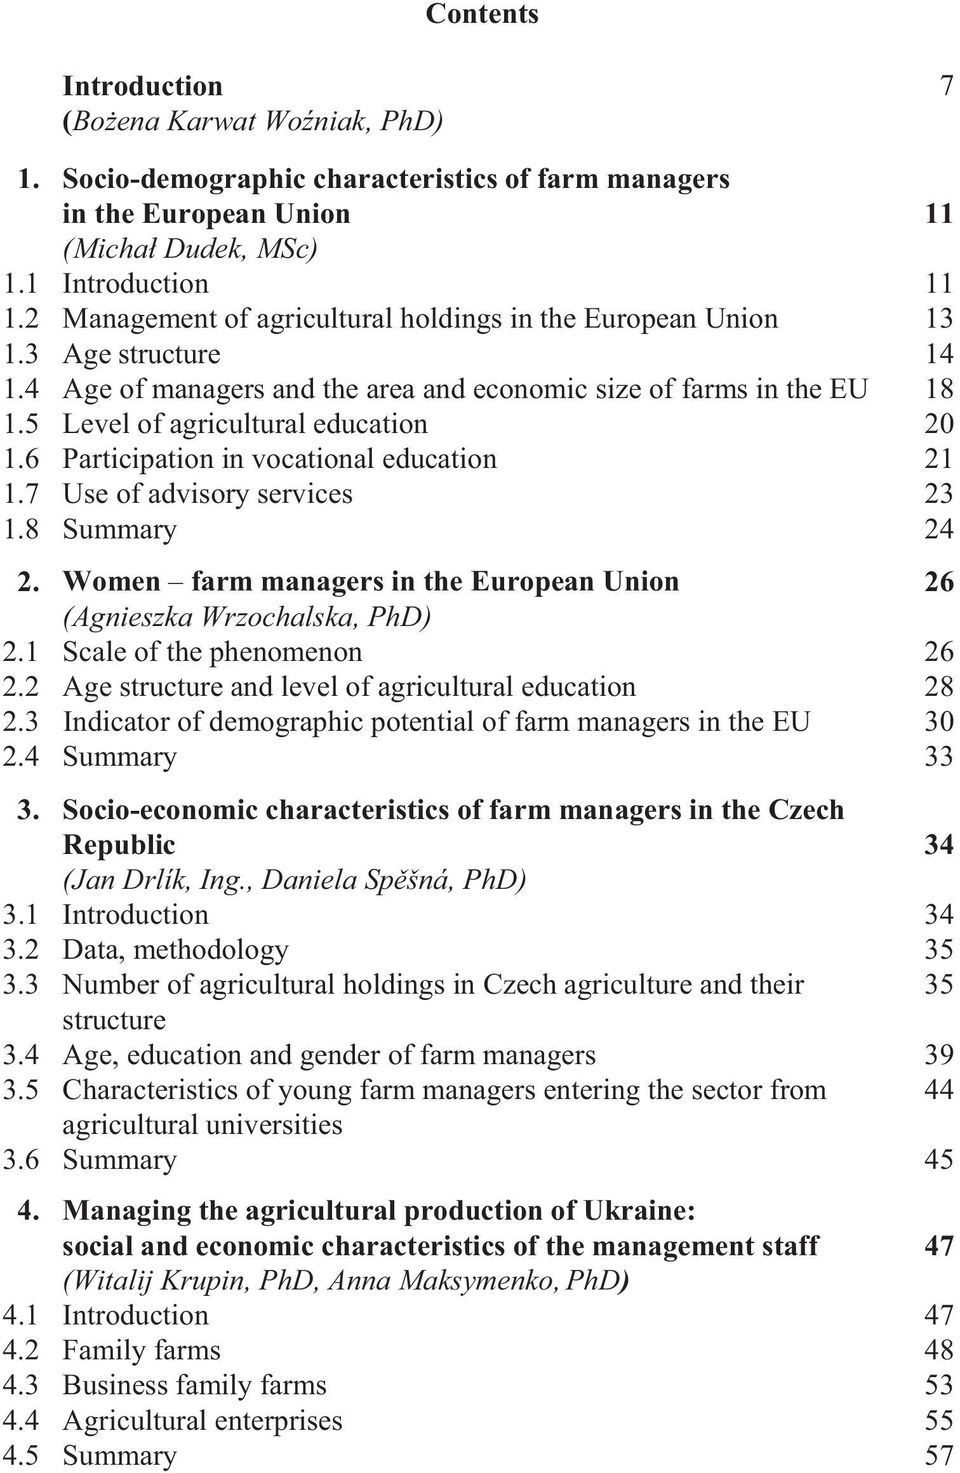 Women farm managers in the European Union (Agnieszka Wrzochalska, PhD) 3.